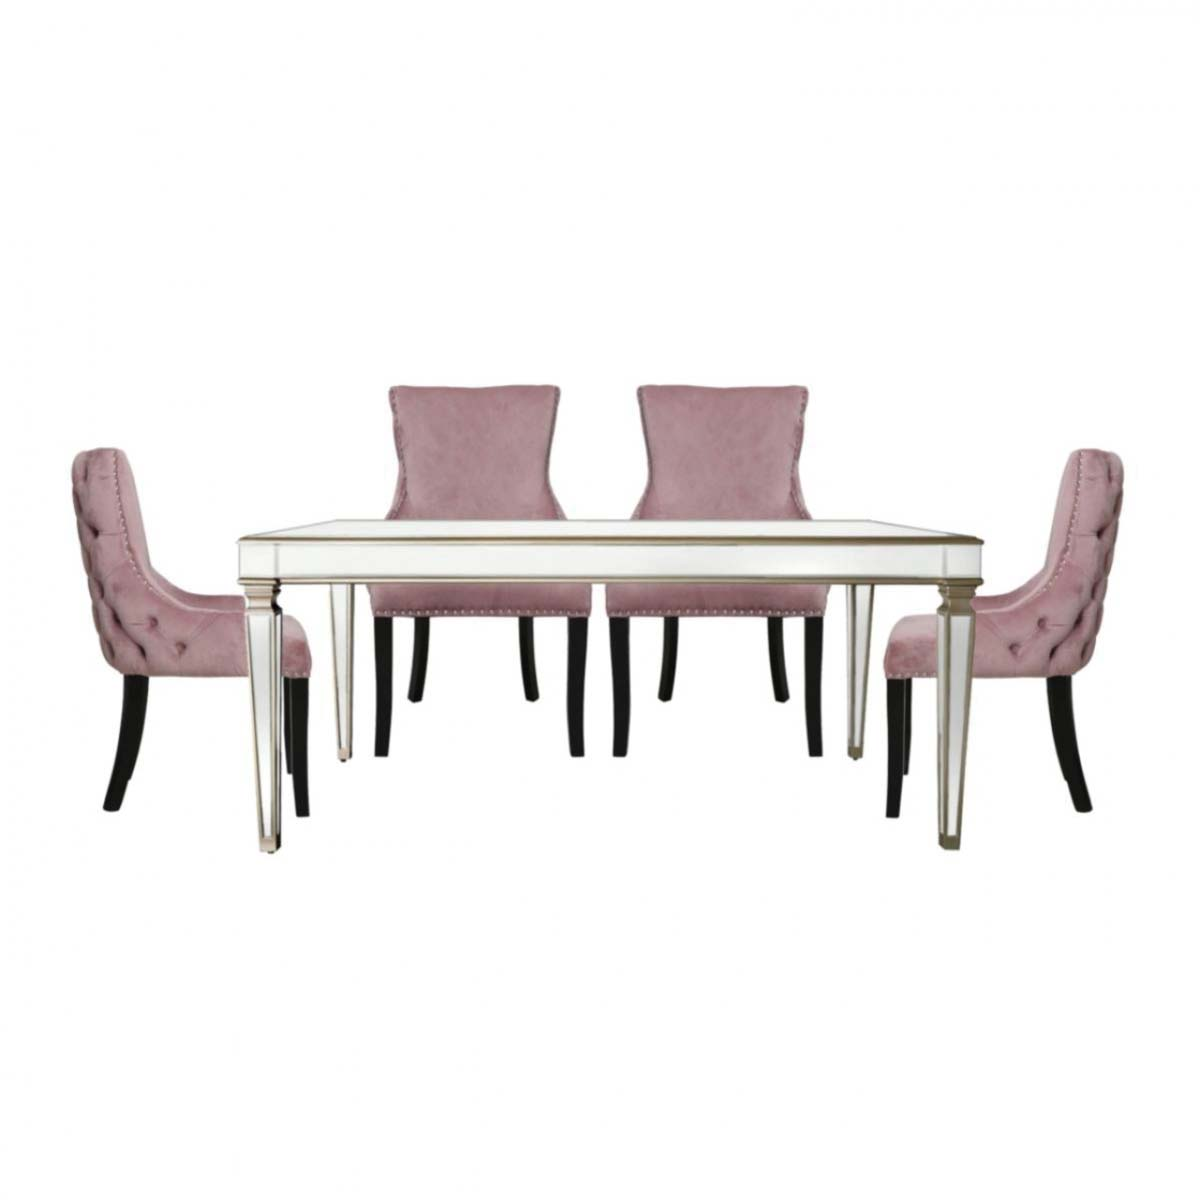 Andreas Champagne Trim Mirrored 5 Piece Set - Pink Chairs